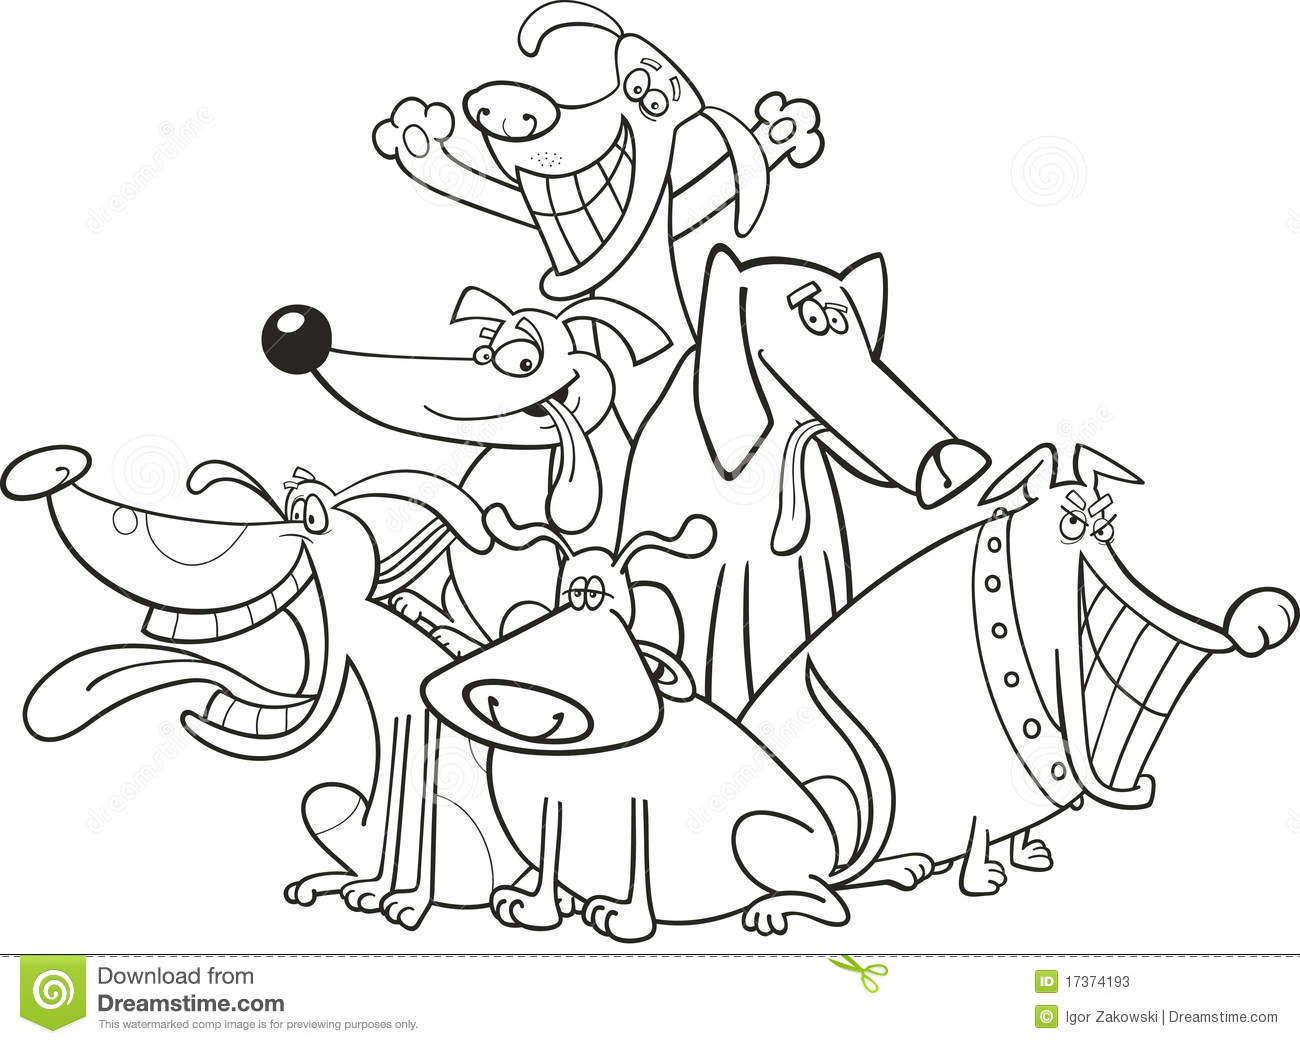 fun dog coloring pages - photo#20